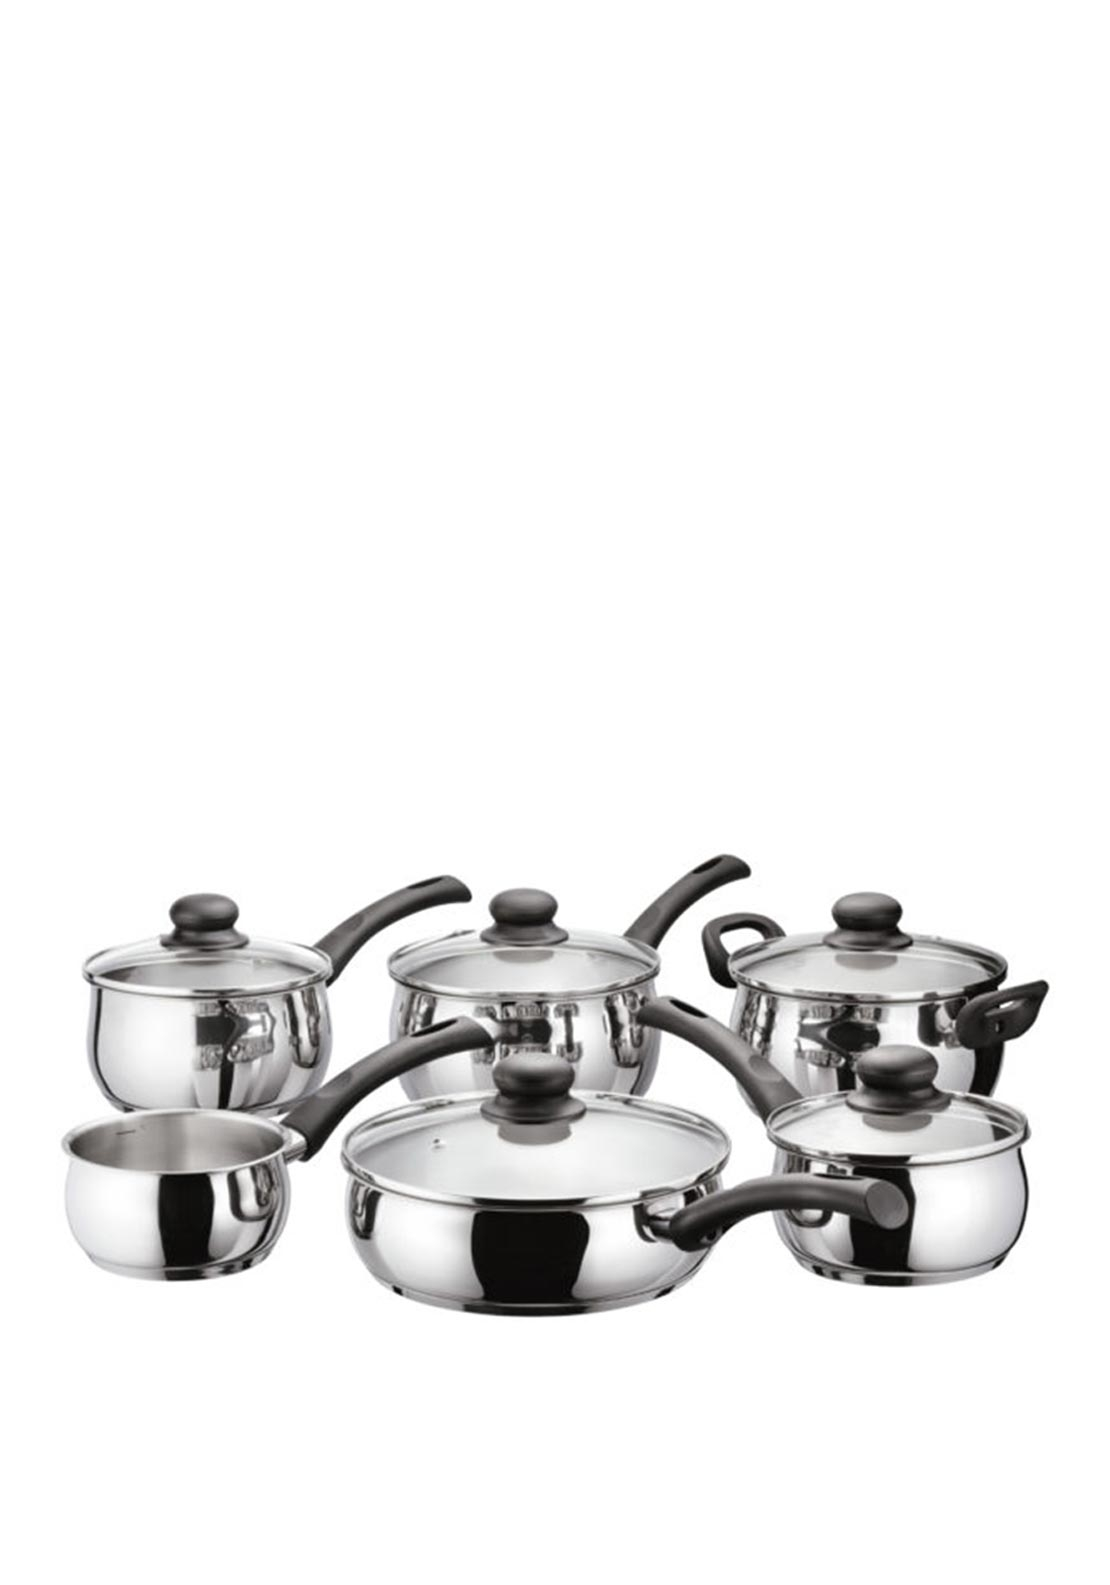 Judge Vista 6 Piece Saucepan Set, Silver